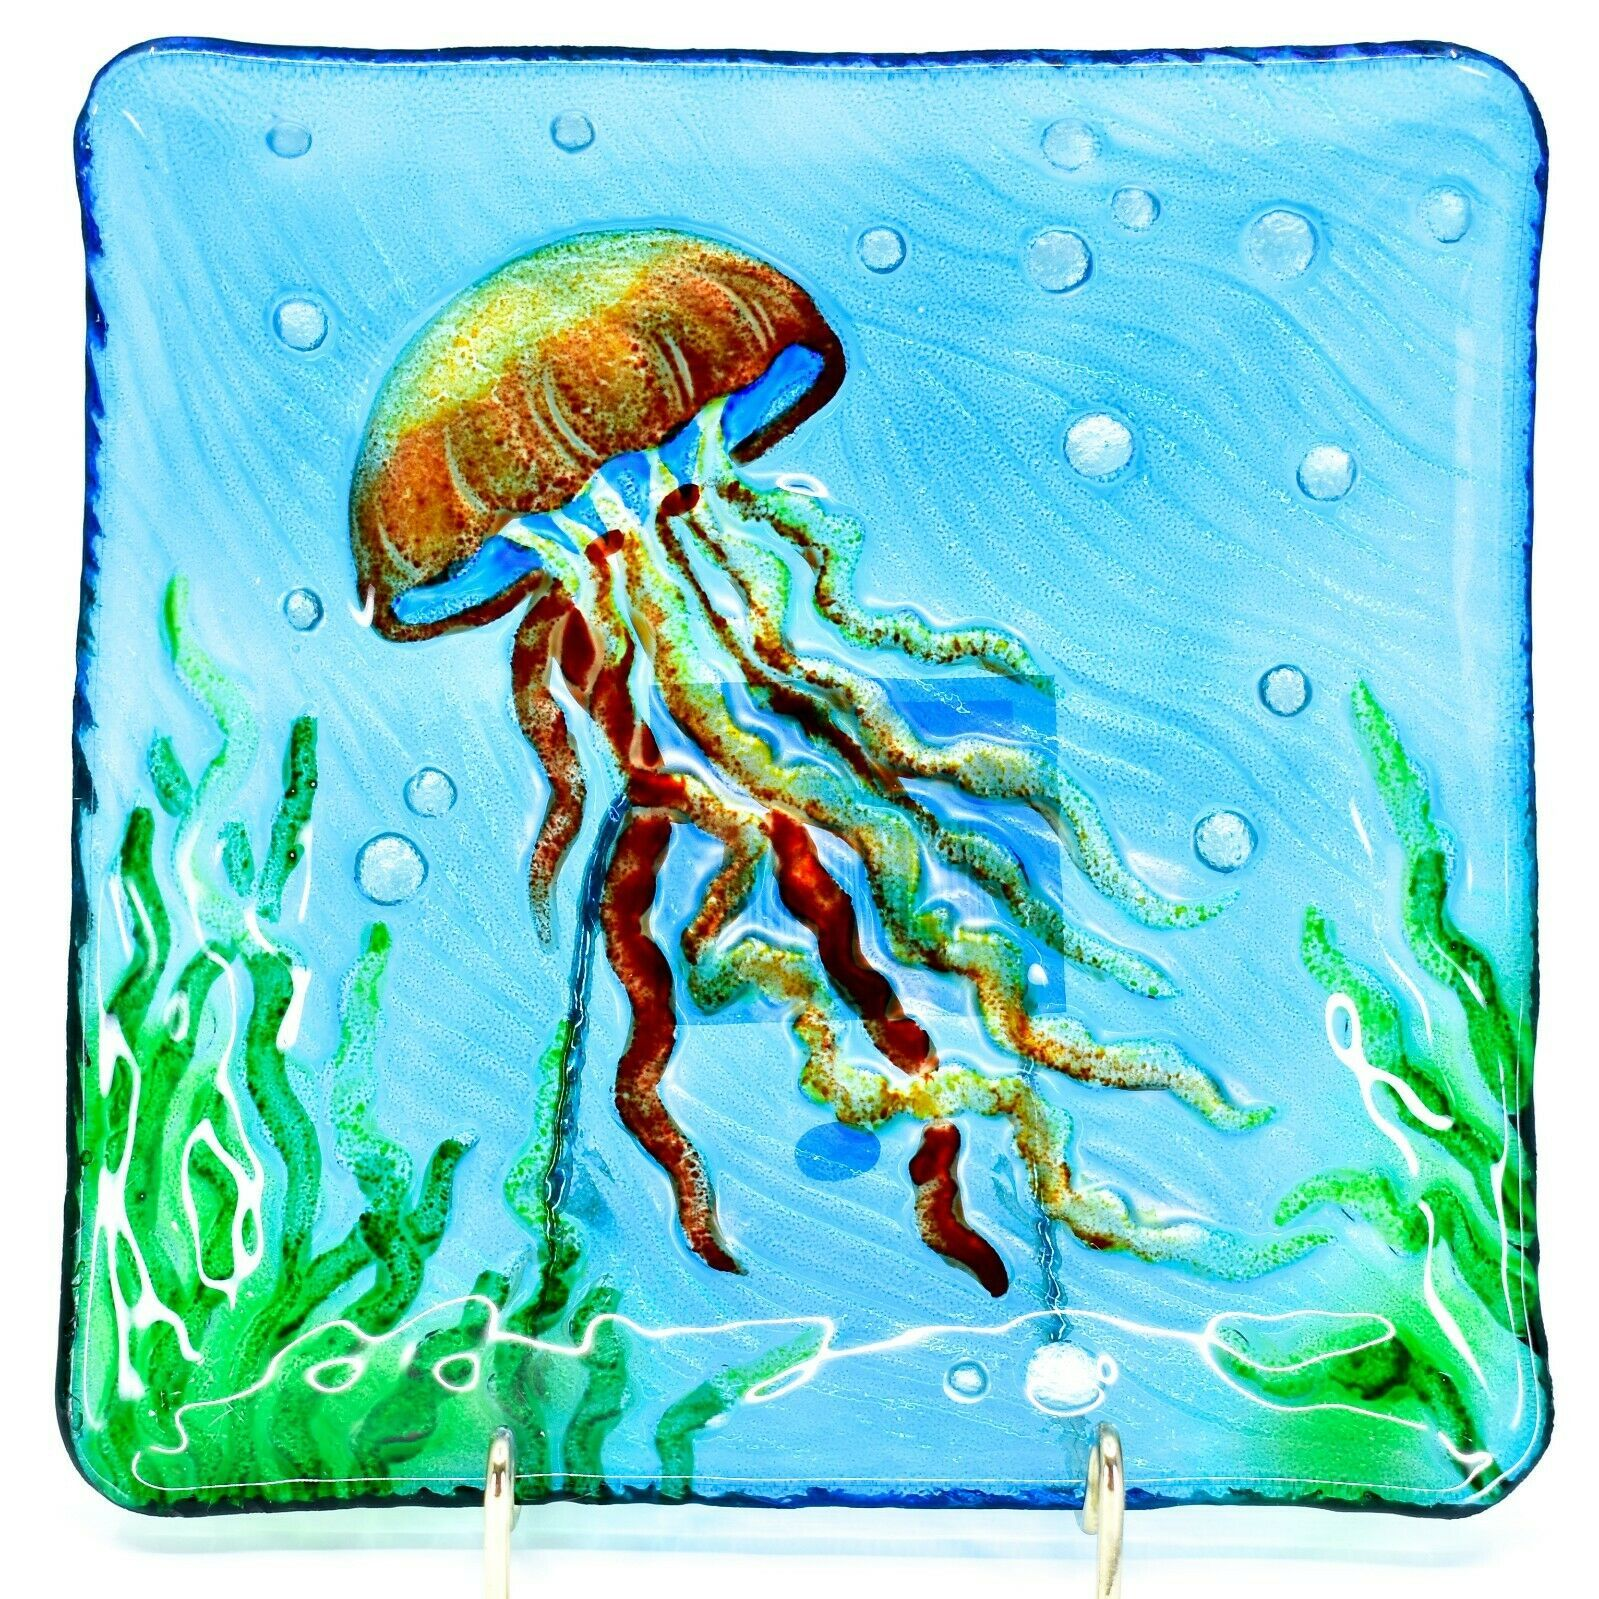 "Jaco Handcrafted Ocean Jellyfish Fused Glass 8.25"" Square Decorative Plate"